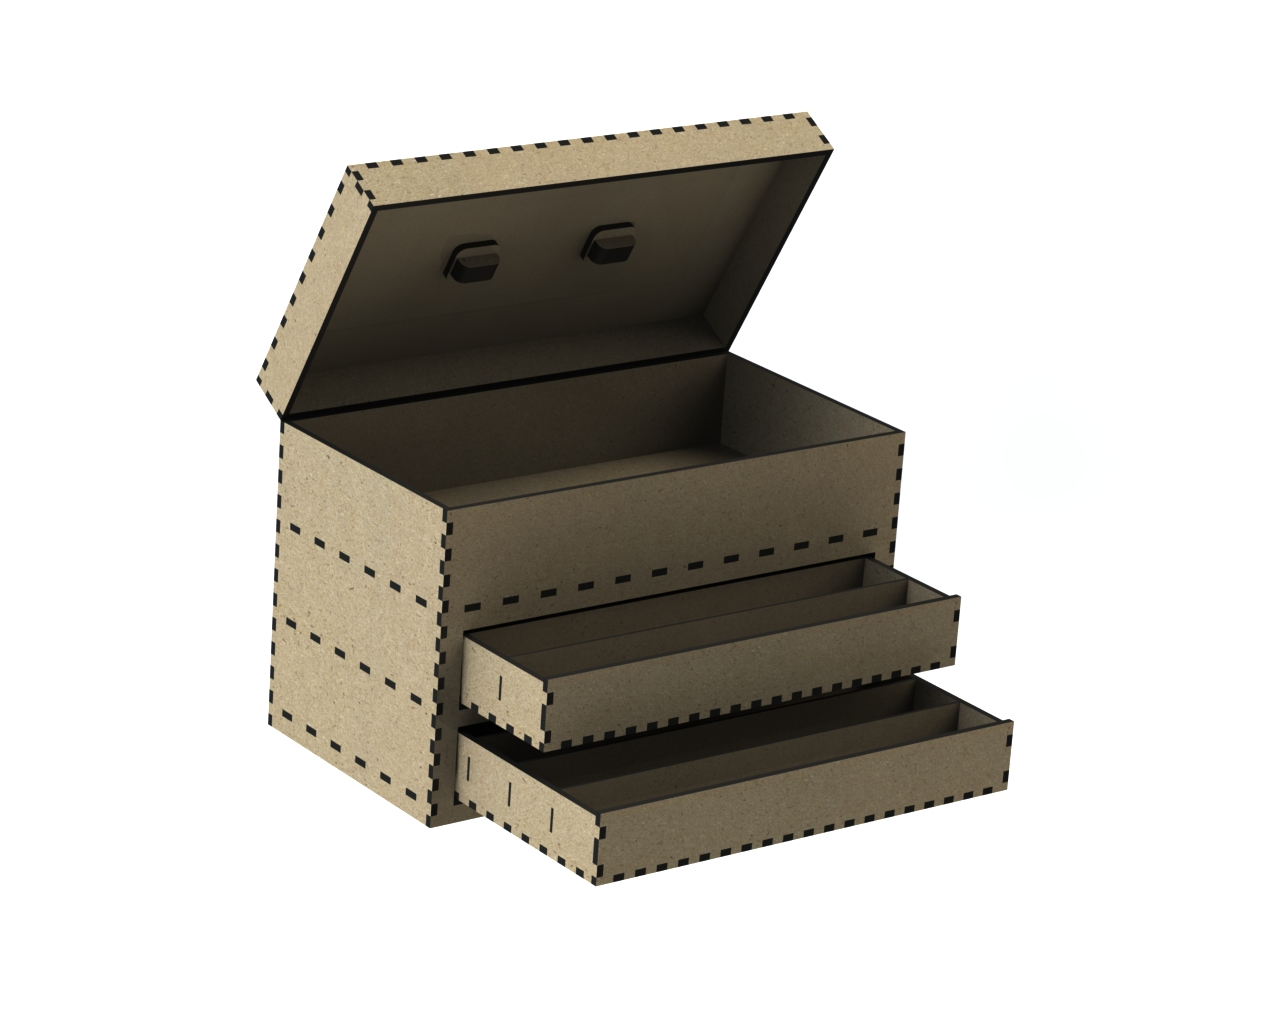 Laser Cut Tool Box DXF File